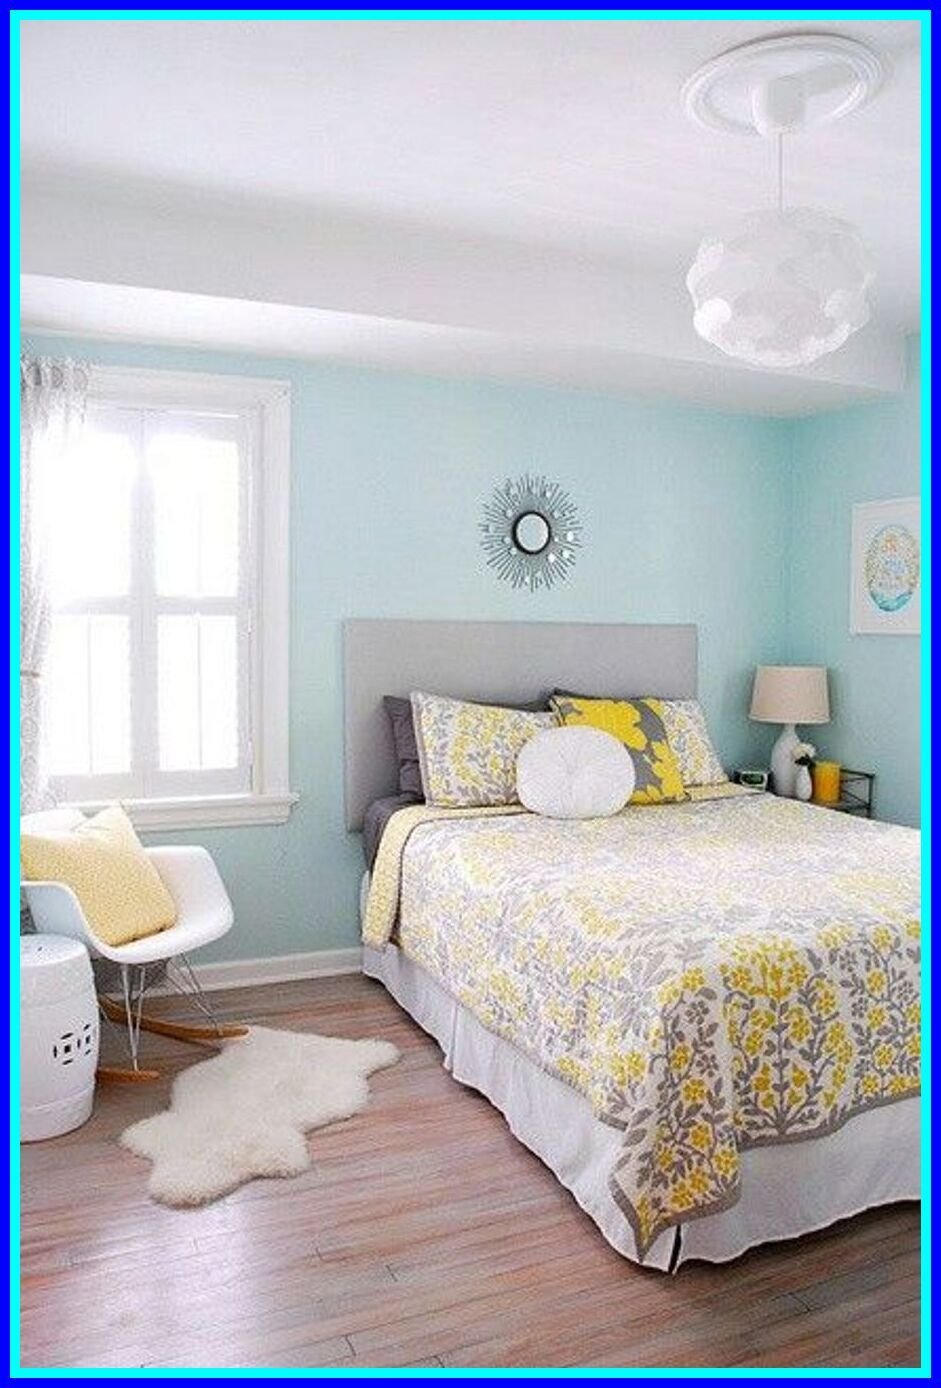 55 Reference Of Light Colors For Small Bedroom Small Bedroom Colours Blue Bedroom Paint Small Bedroom Paint Colors